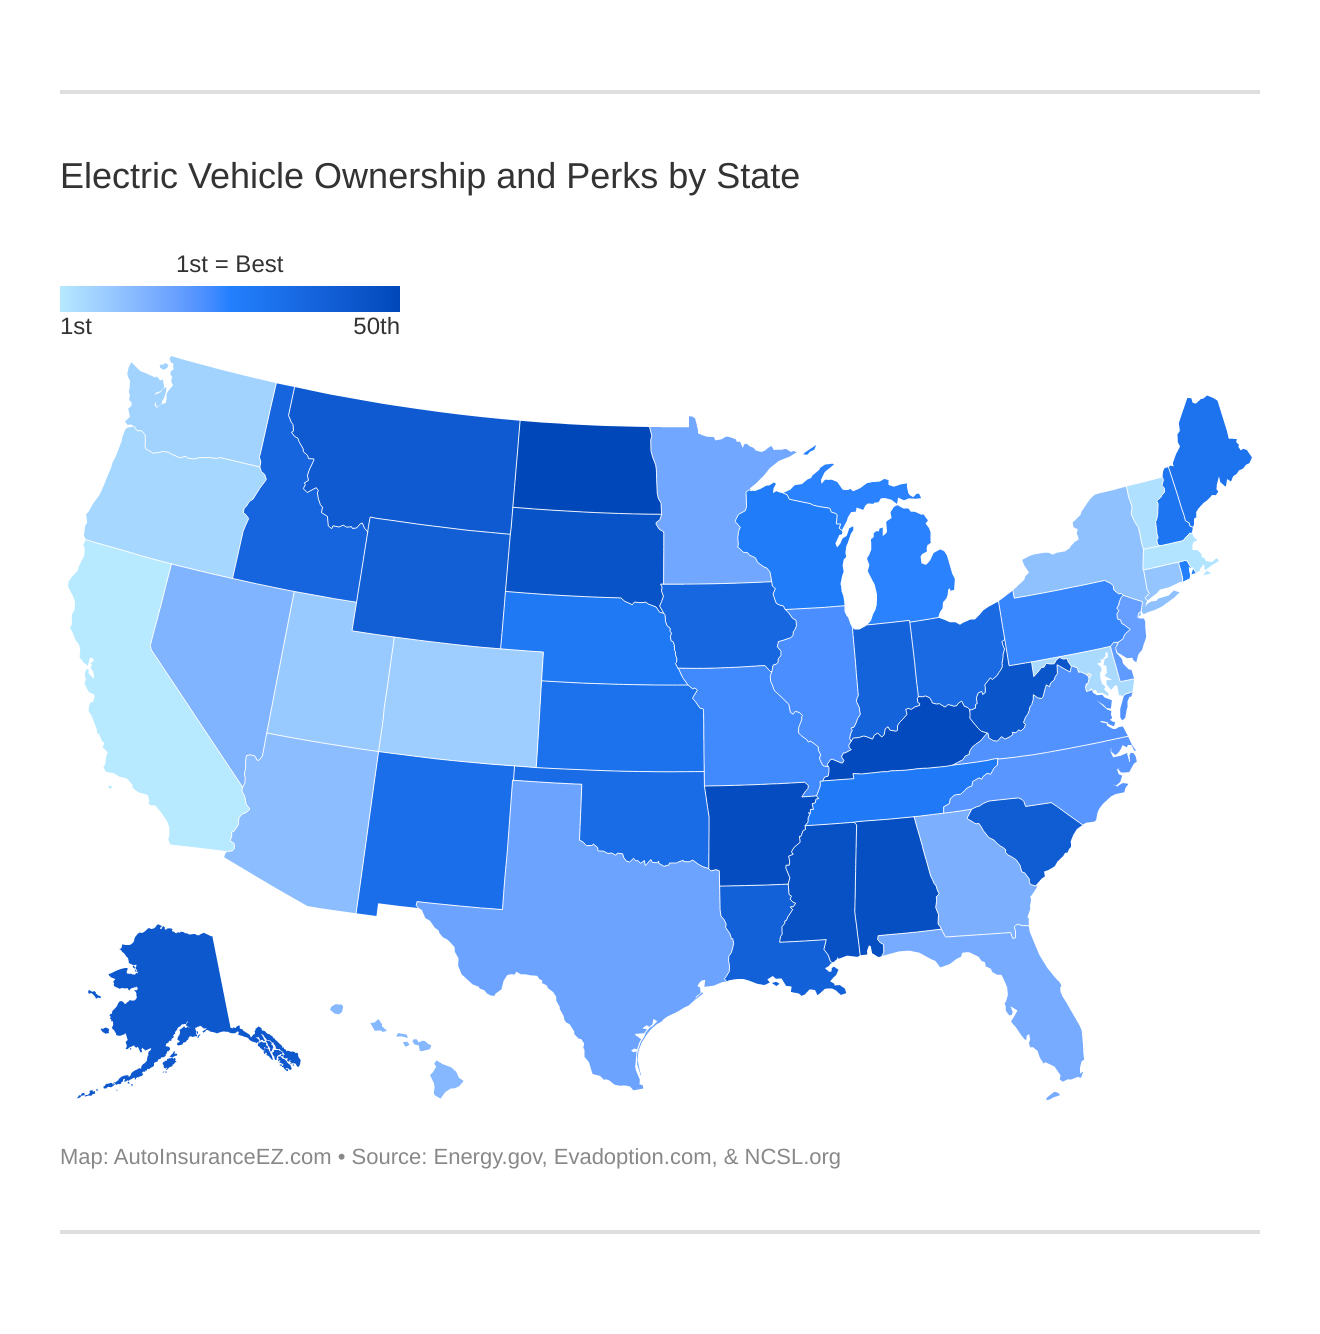 Electric Vehicle Ownership and Perks by State